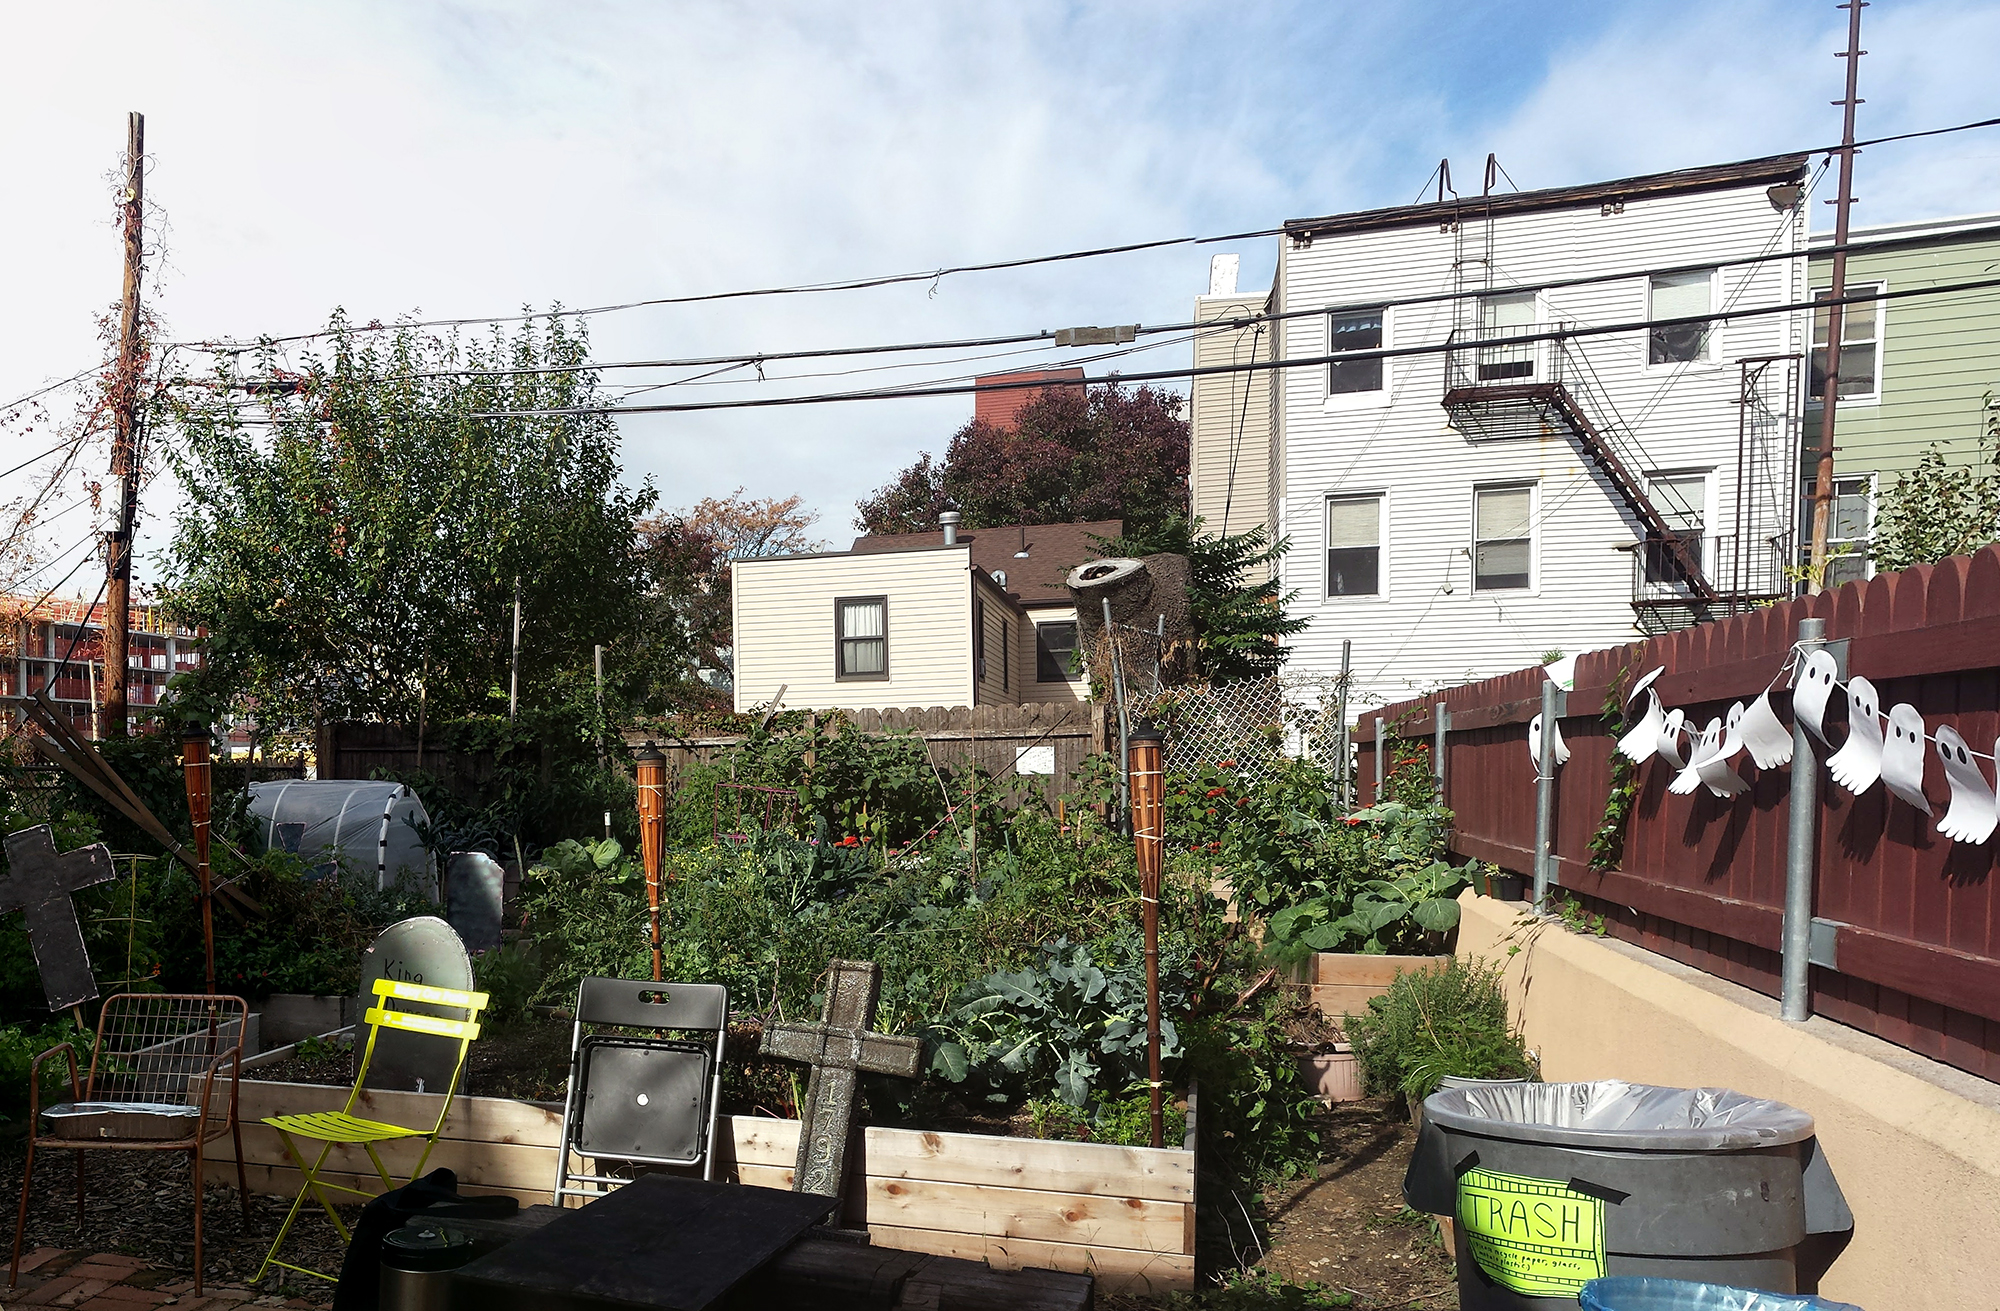 Java Street Community Garden is a project of the Open Space Alliance for Northern Brooklyn, which hosts gardening and other classes and activities funded by the GCEF. Photo: Johanna Jelinek Boman.